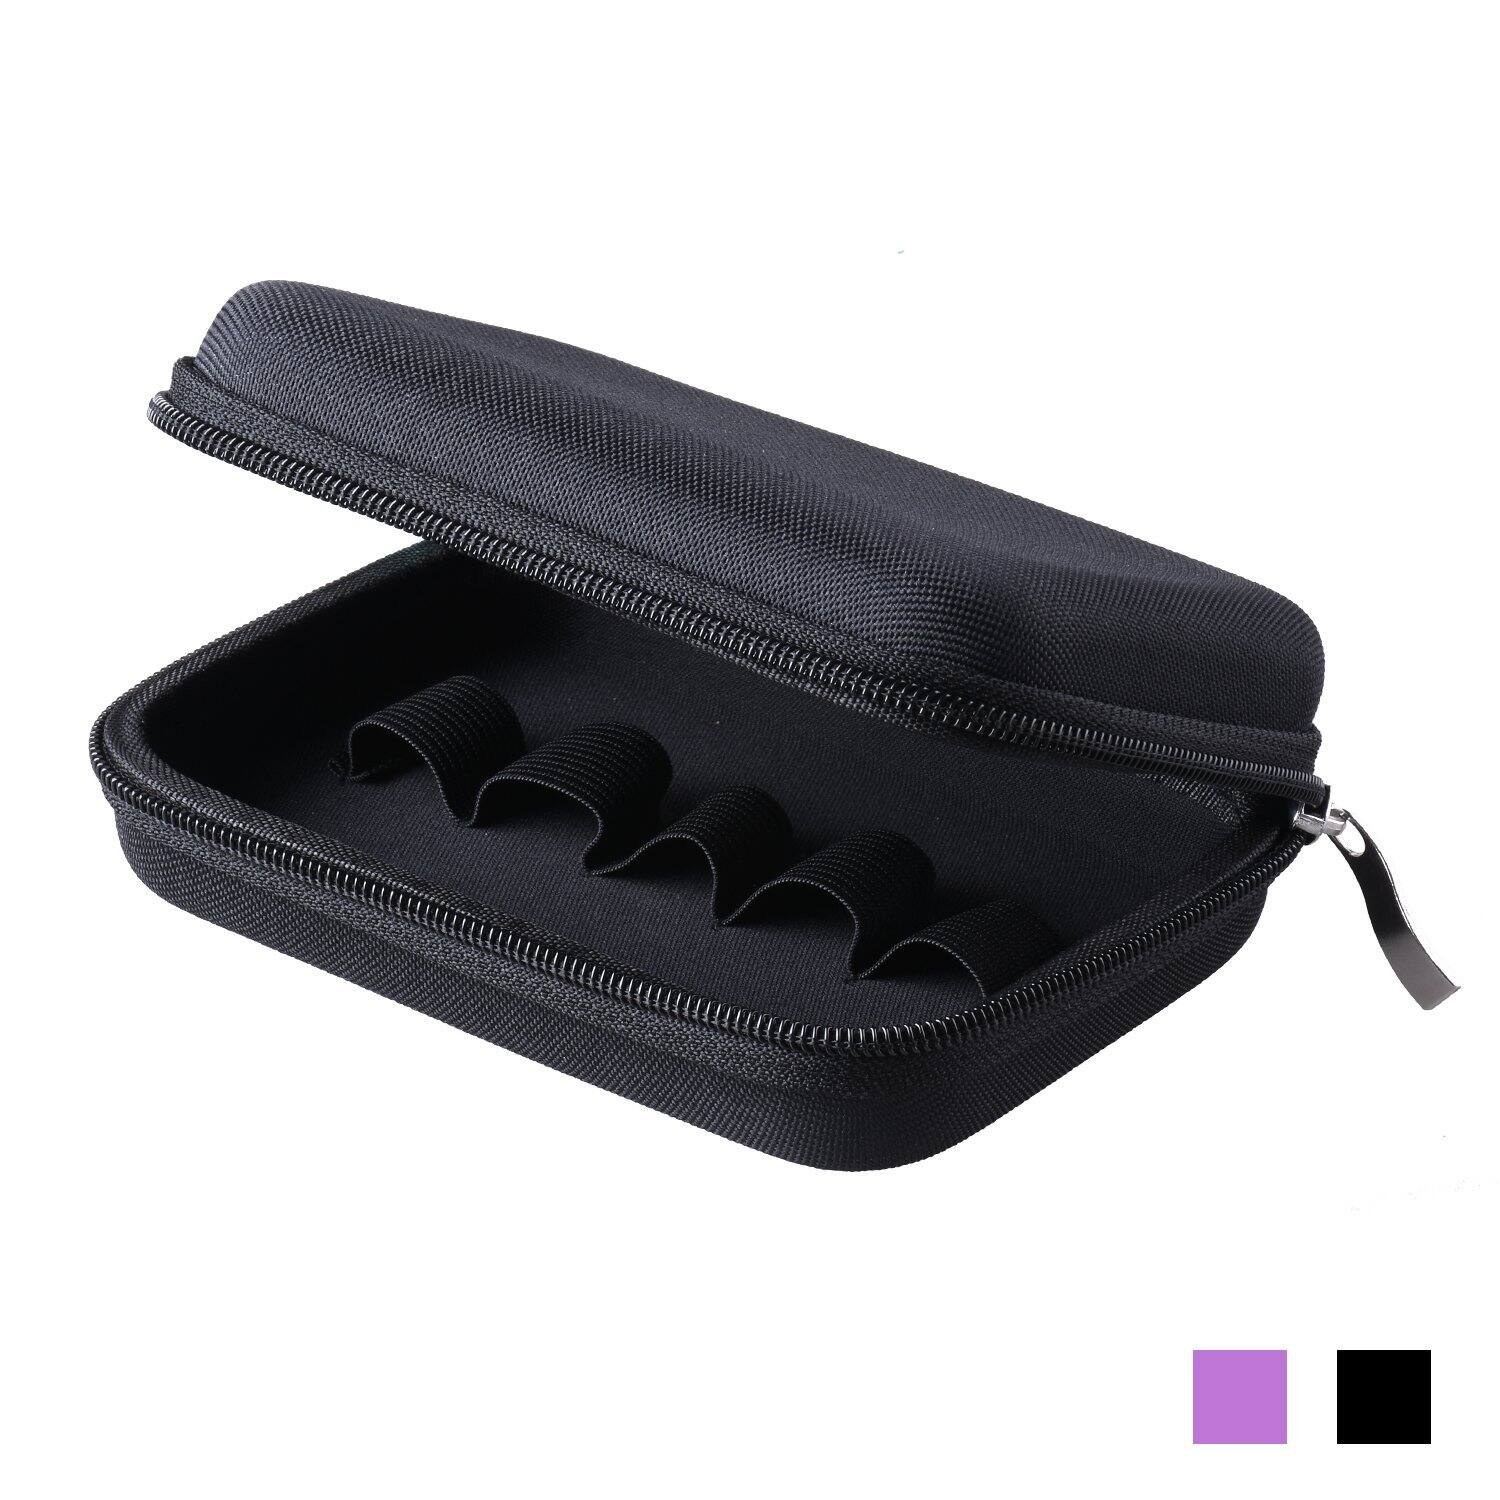 LURICO 10 Bottles Essential Oil Carrying Case for $8.99